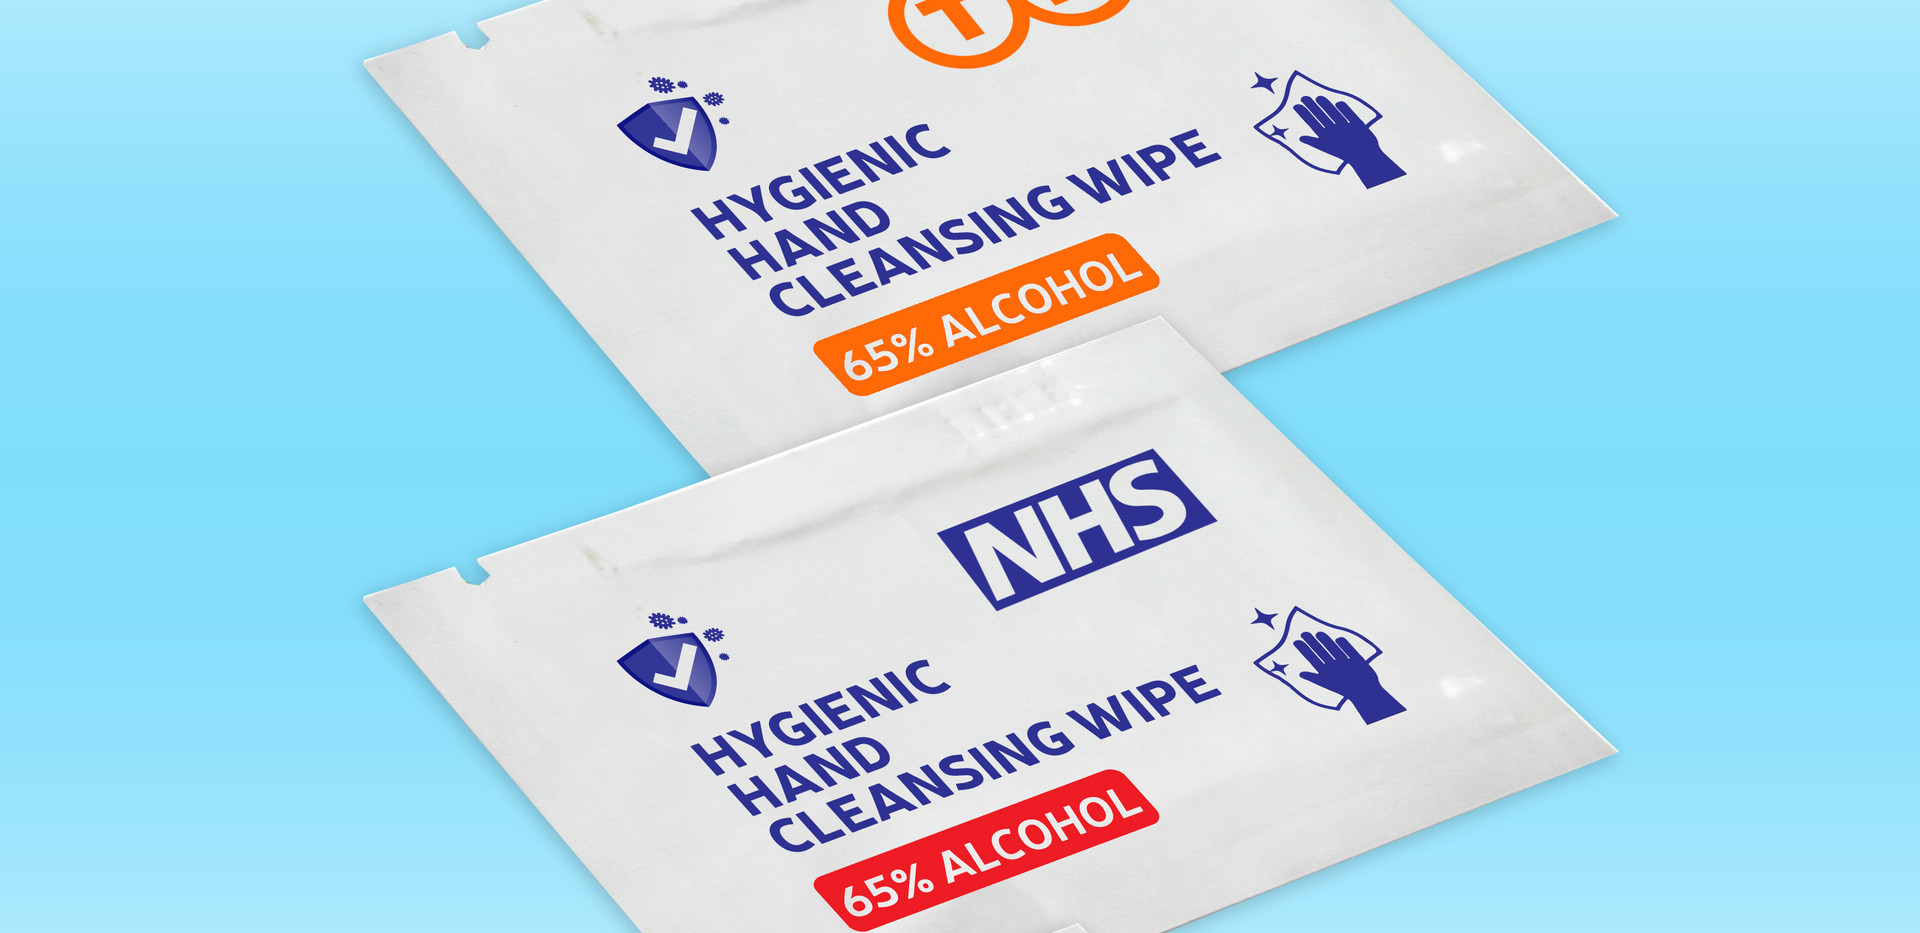 AW04 hygienic cleansing wipes-your-logo.